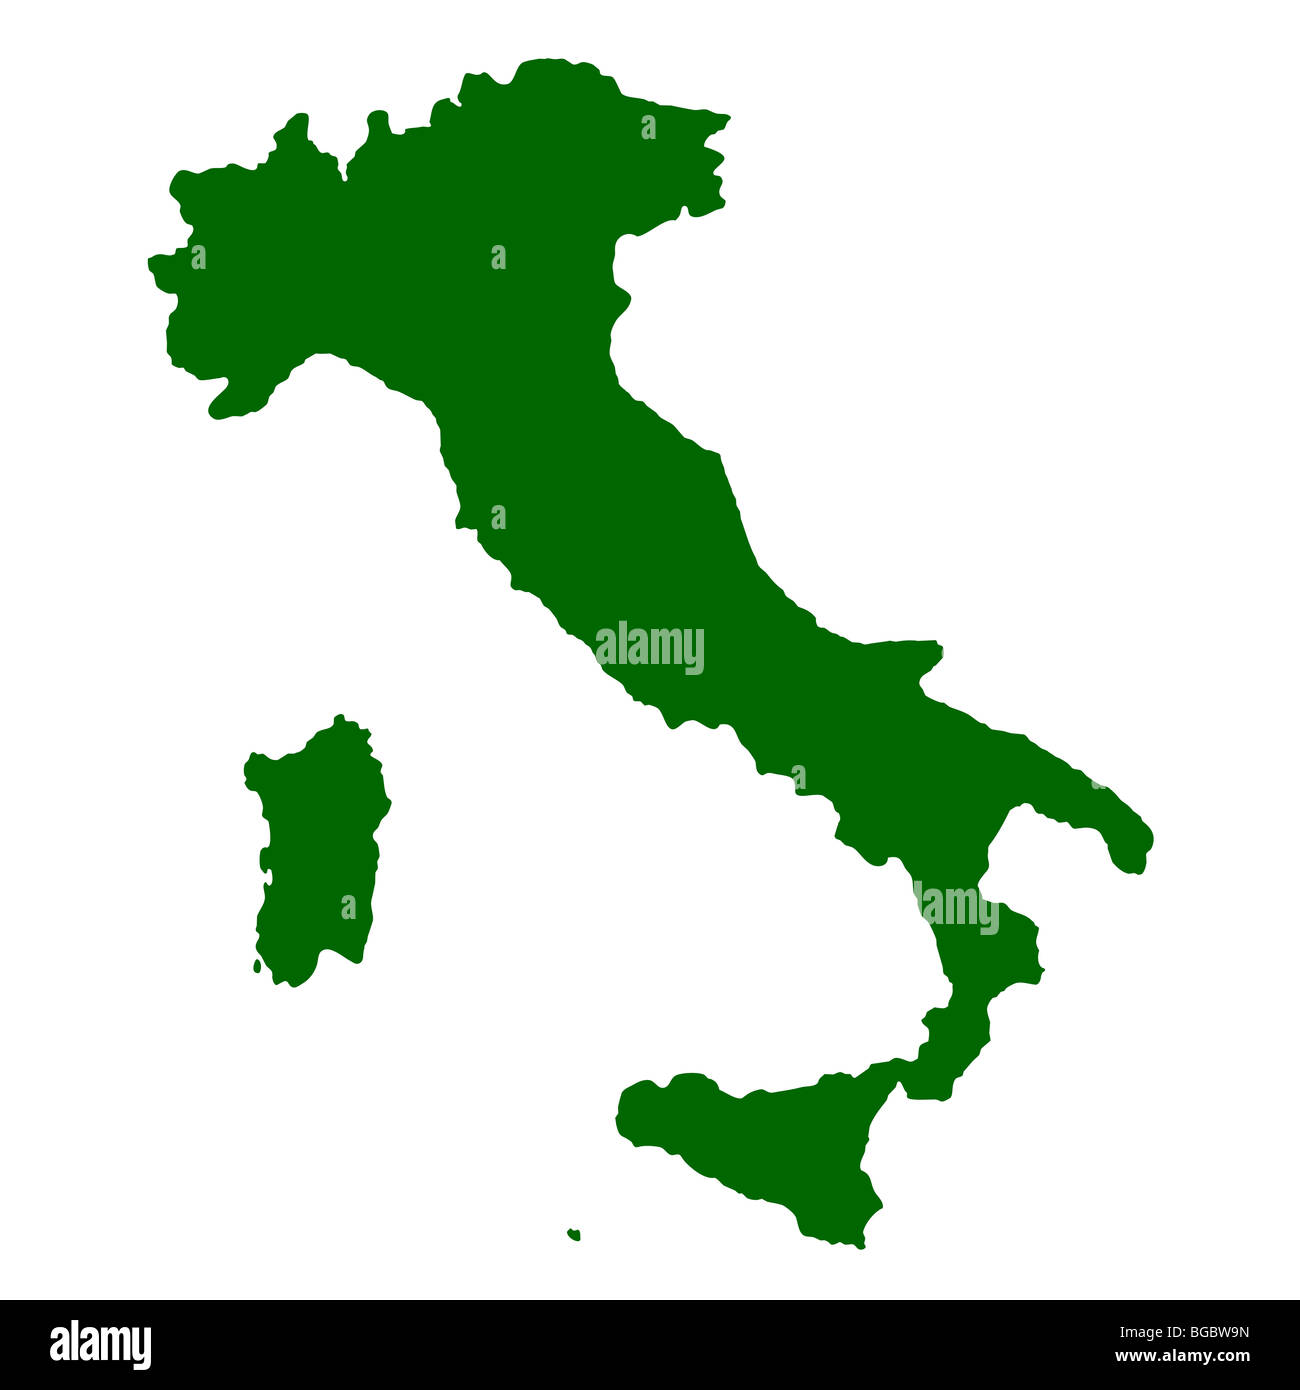 Map Of Italy Images.Italy Map Stock Photos Italy Map Stock Images Alamy